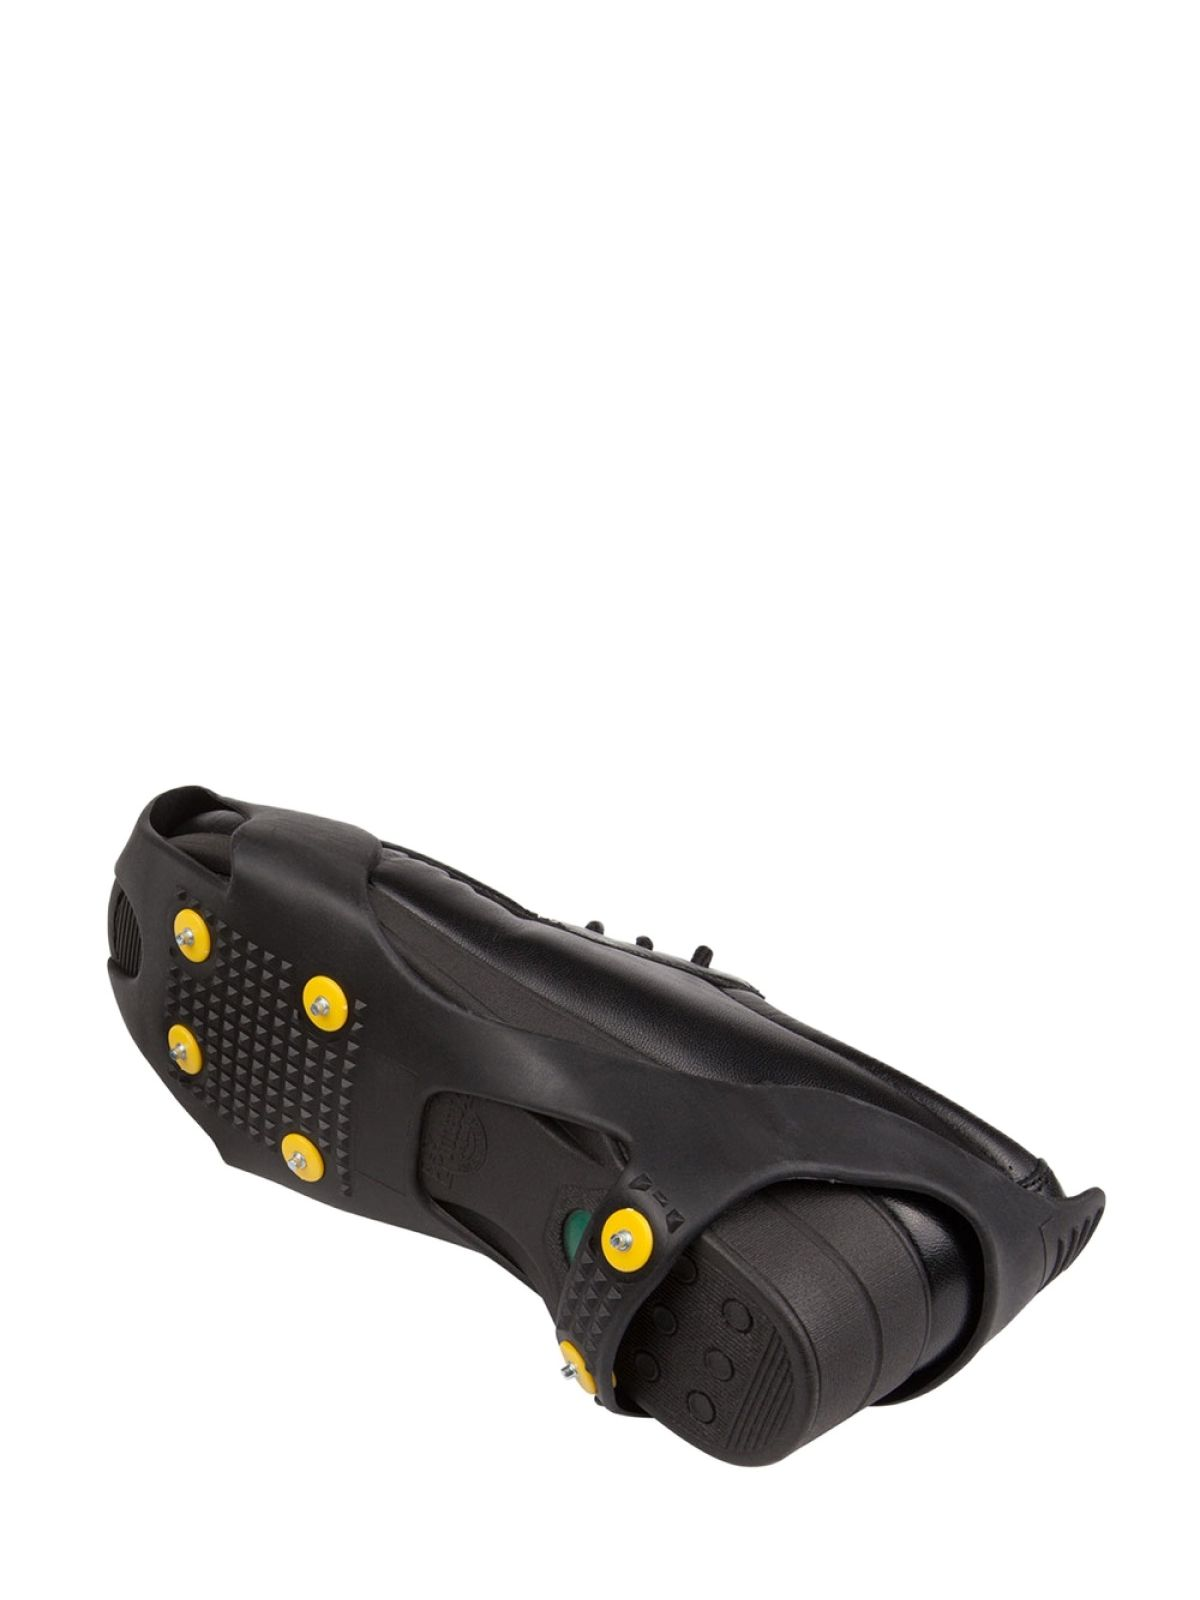 Shoes snow chain is suitable for black men women winter new season stylish and comfortable design useful ice